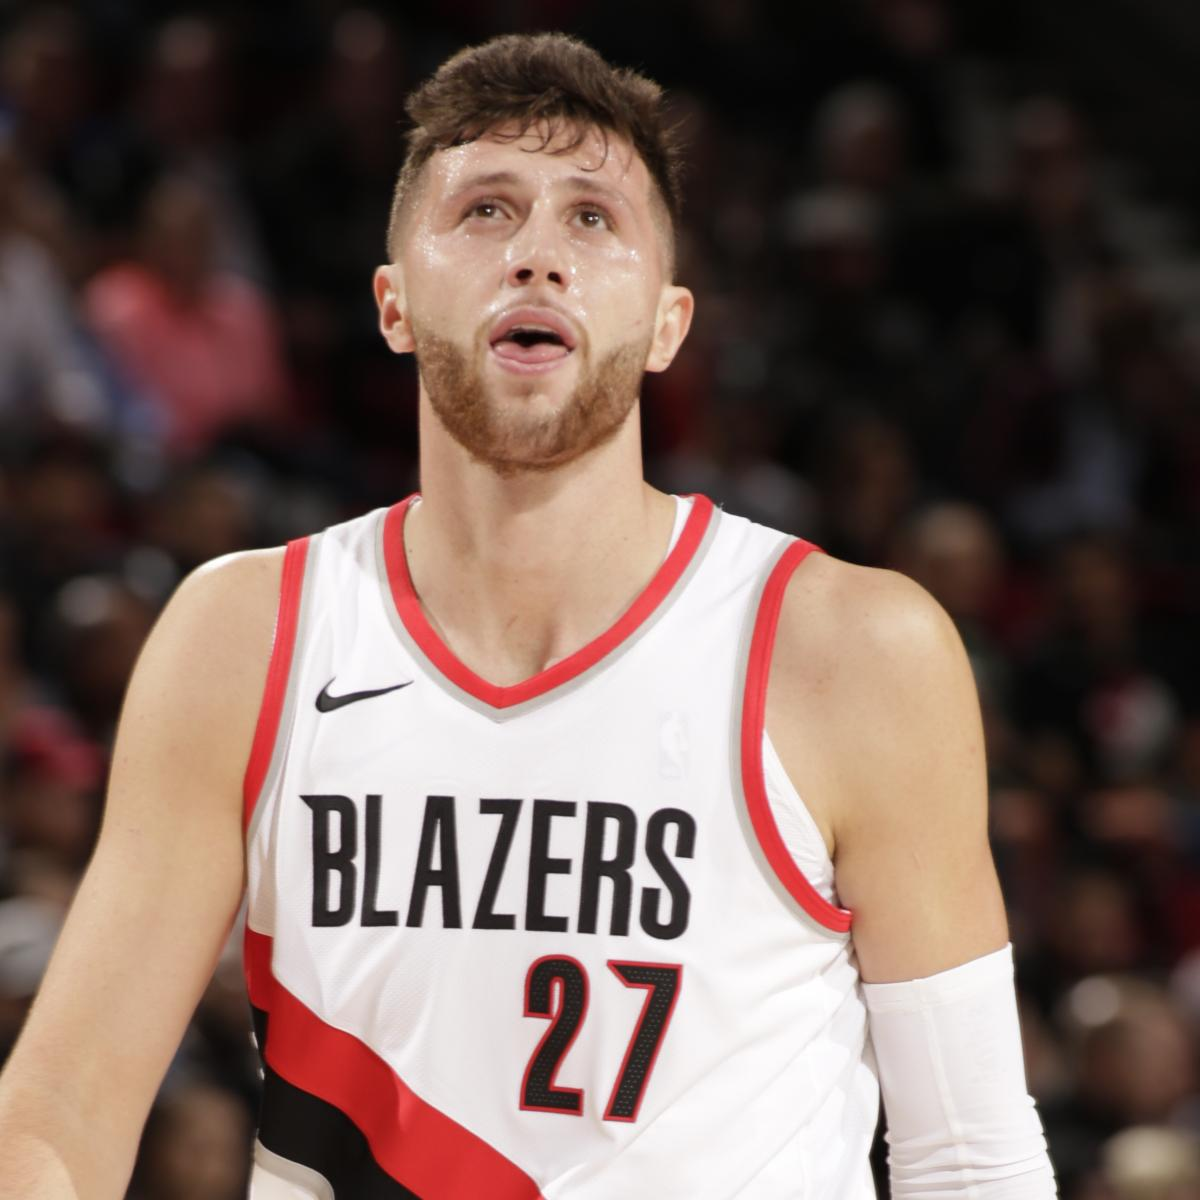 Blazers Injury Report: Jusuf Nurkic Injures Ankle Vs. Wizards; X-Rays Come Back